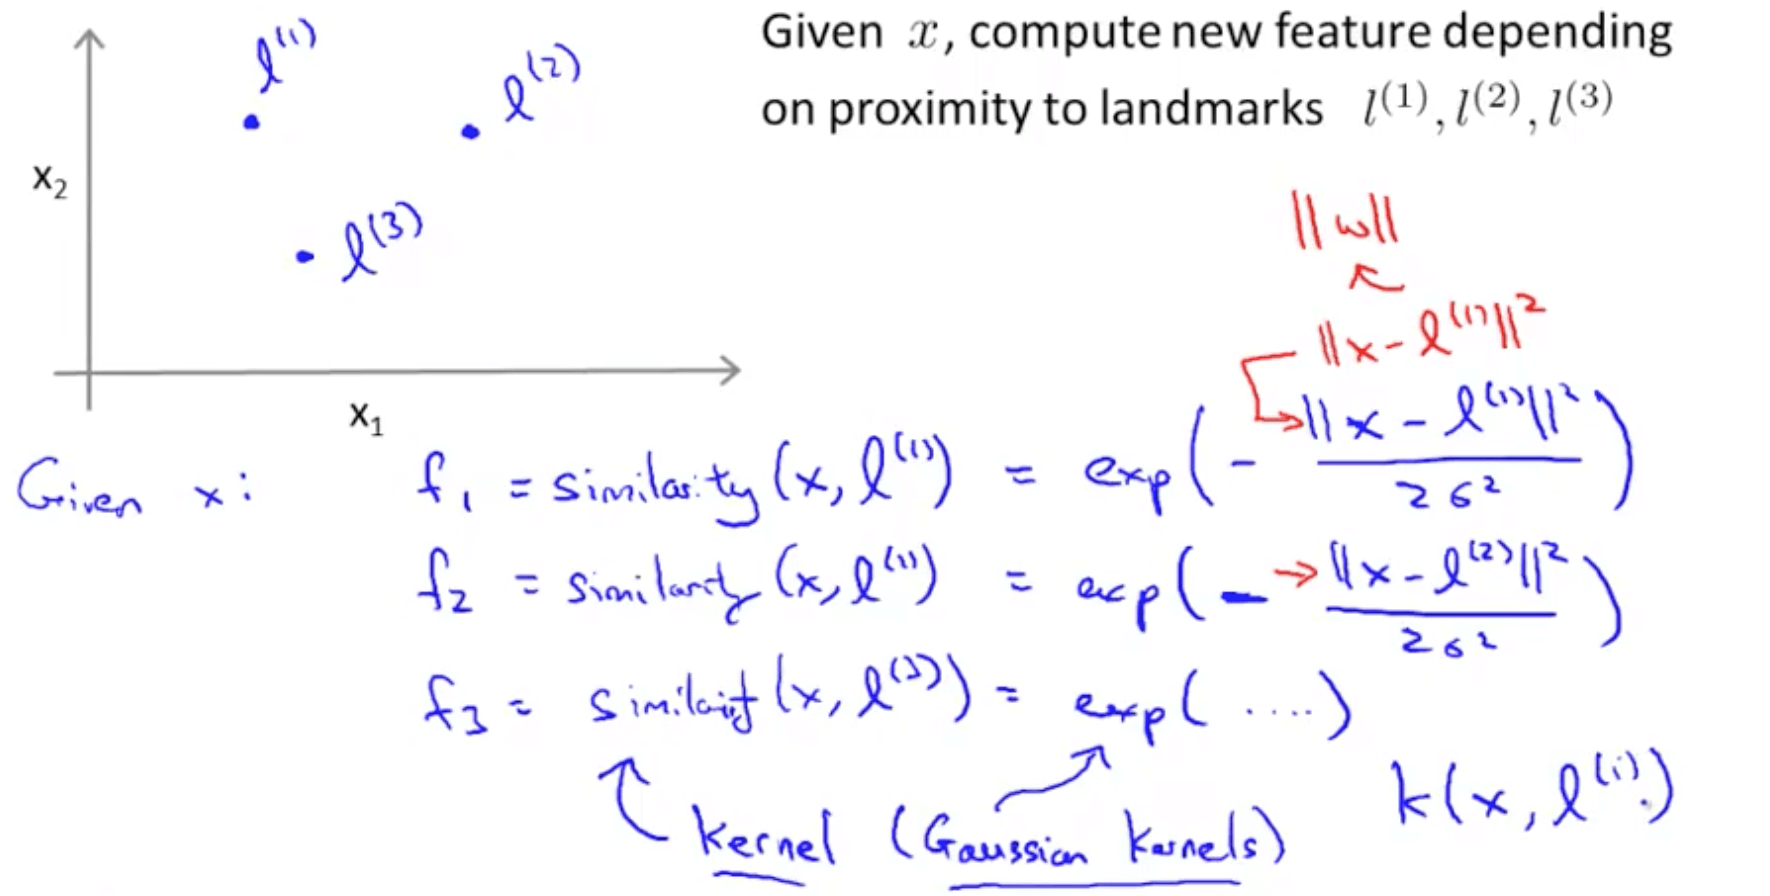 Support Vector Machines (SVMs) | Machine Learning, Deep Learning